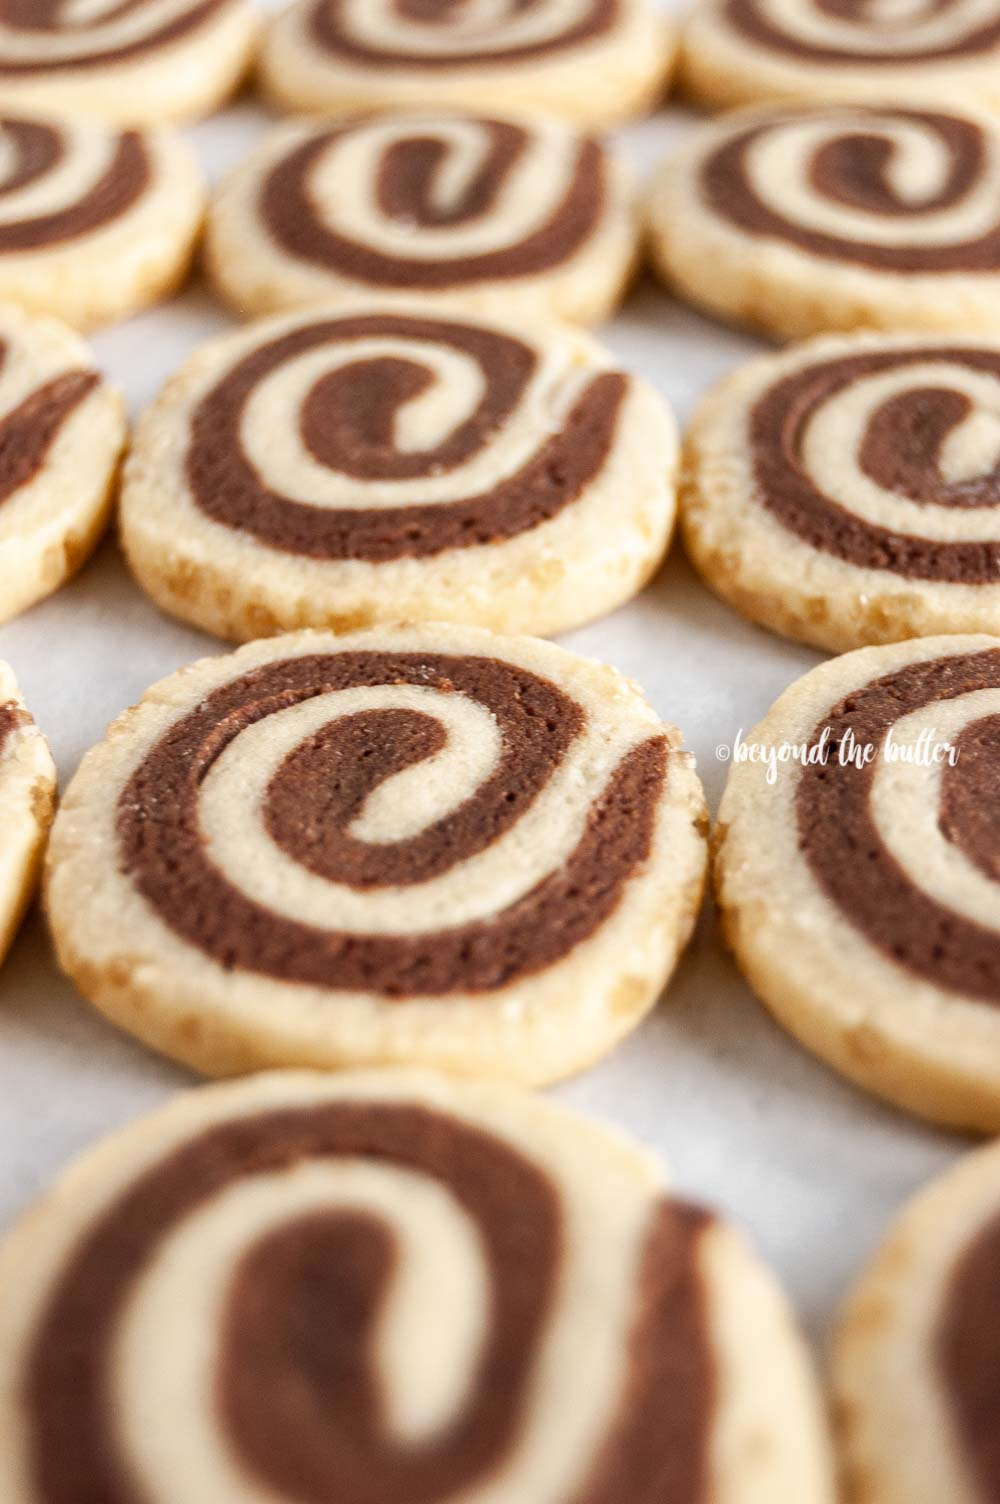 Angled image of Chocolate Pinwheel Cookies in rows | All images © Beyond the Butter™